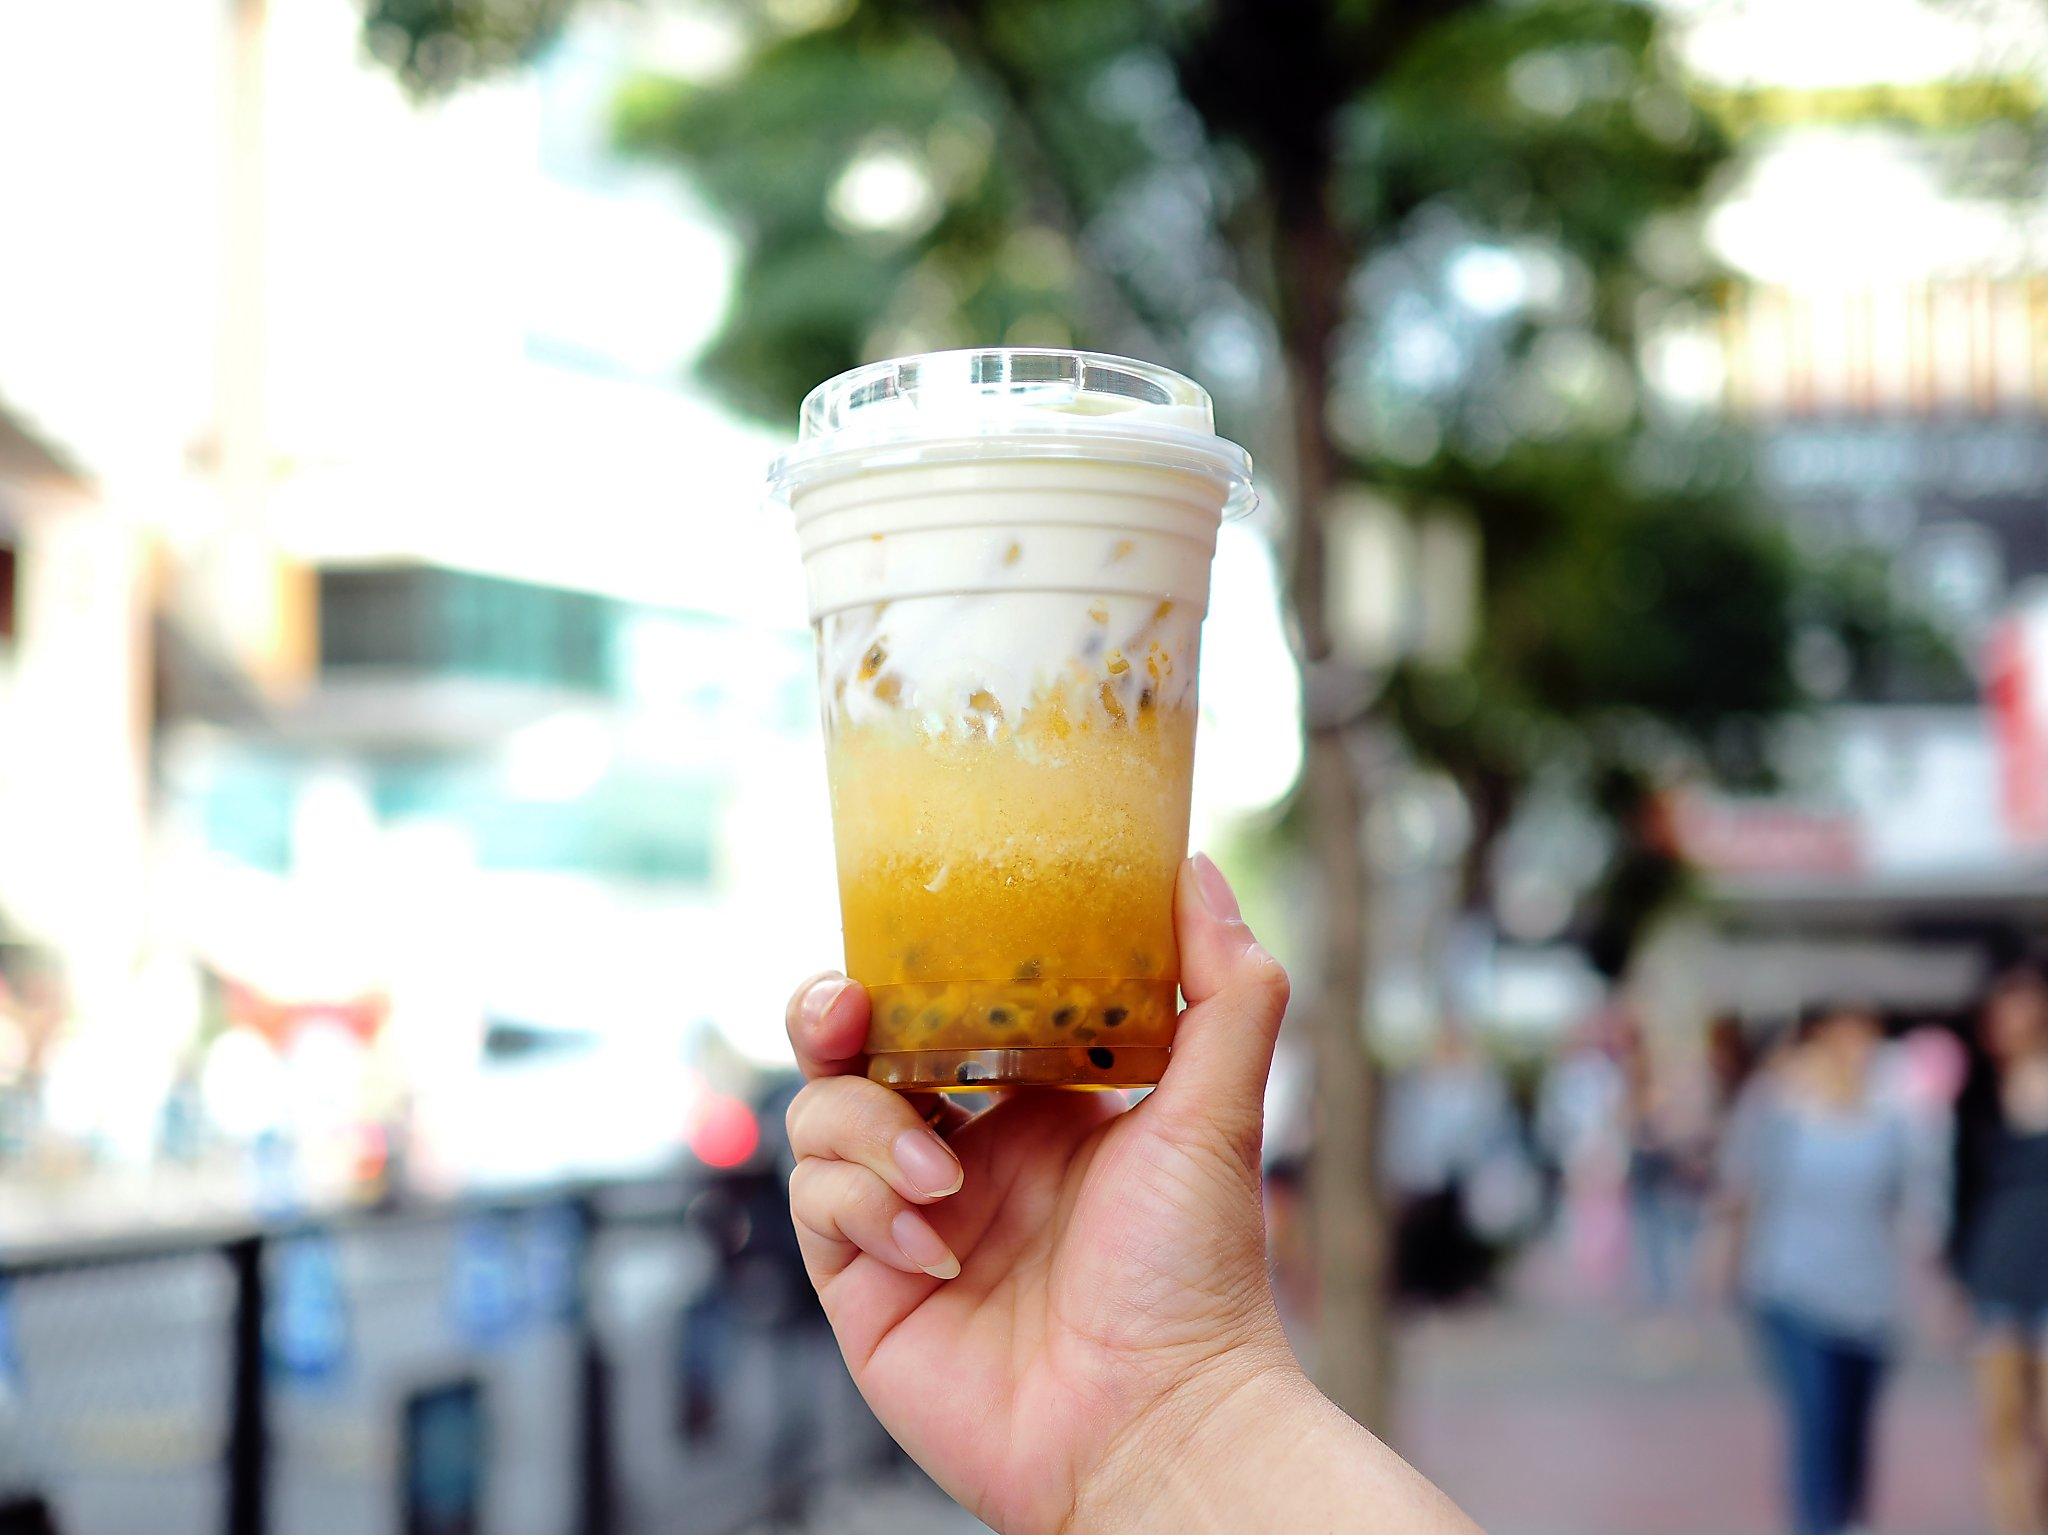 The boba crisis is a perfect opportunity to try the superior tea topping: cheese foam